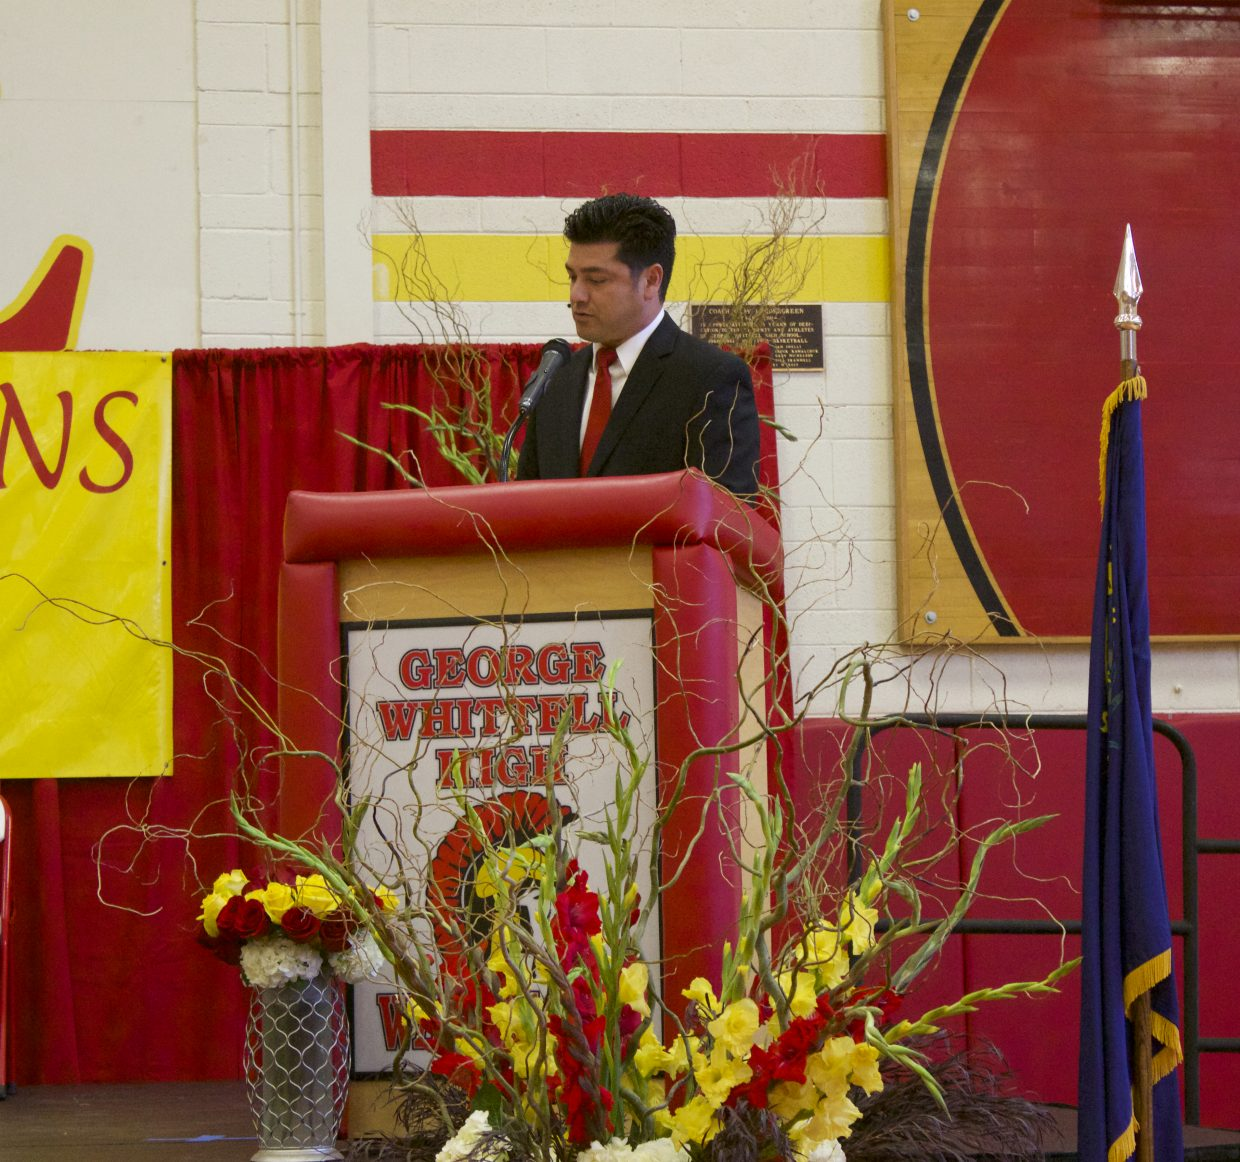 GWHS principal Crespin Esquivel opened the graduation ceremony with a the message of being tenacious and resilient.